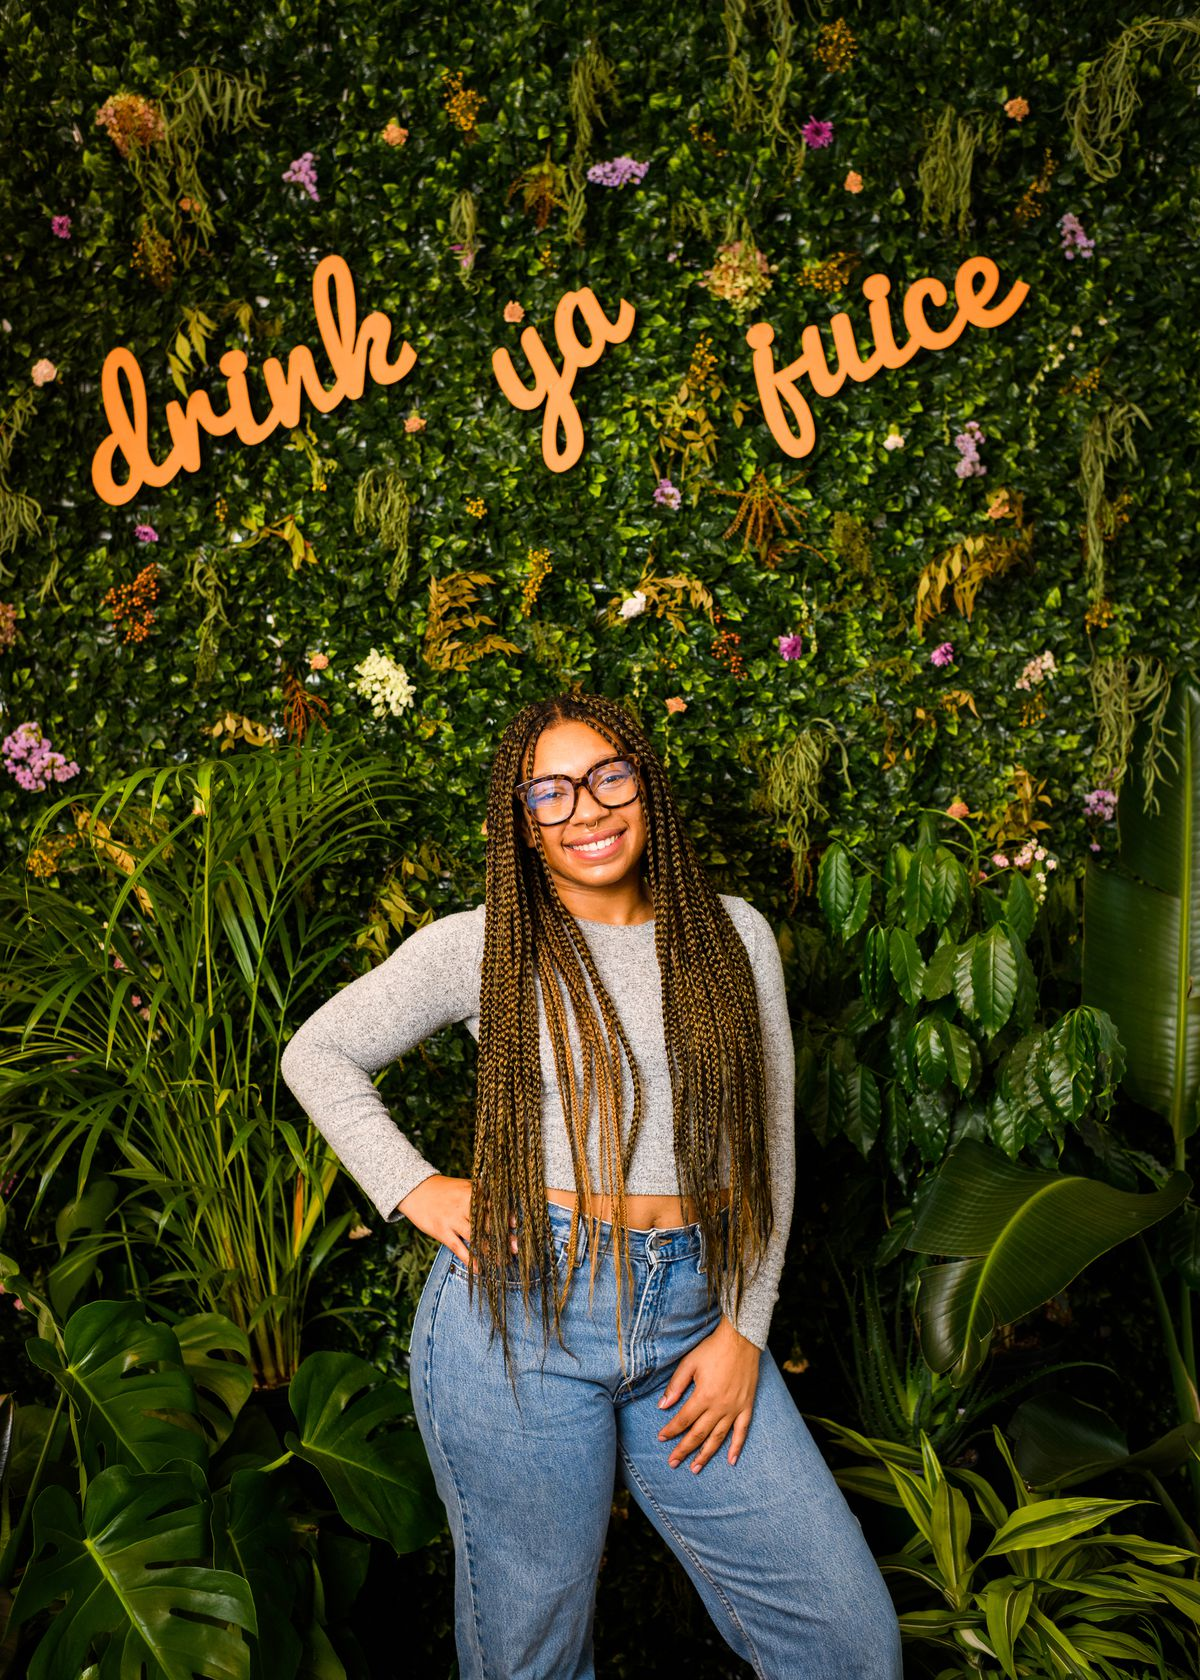 """A woman in a grey shirt and blue jeans stands in front of a wall of plants. The words """"drink ya juice"""" are mounted among the plants."""